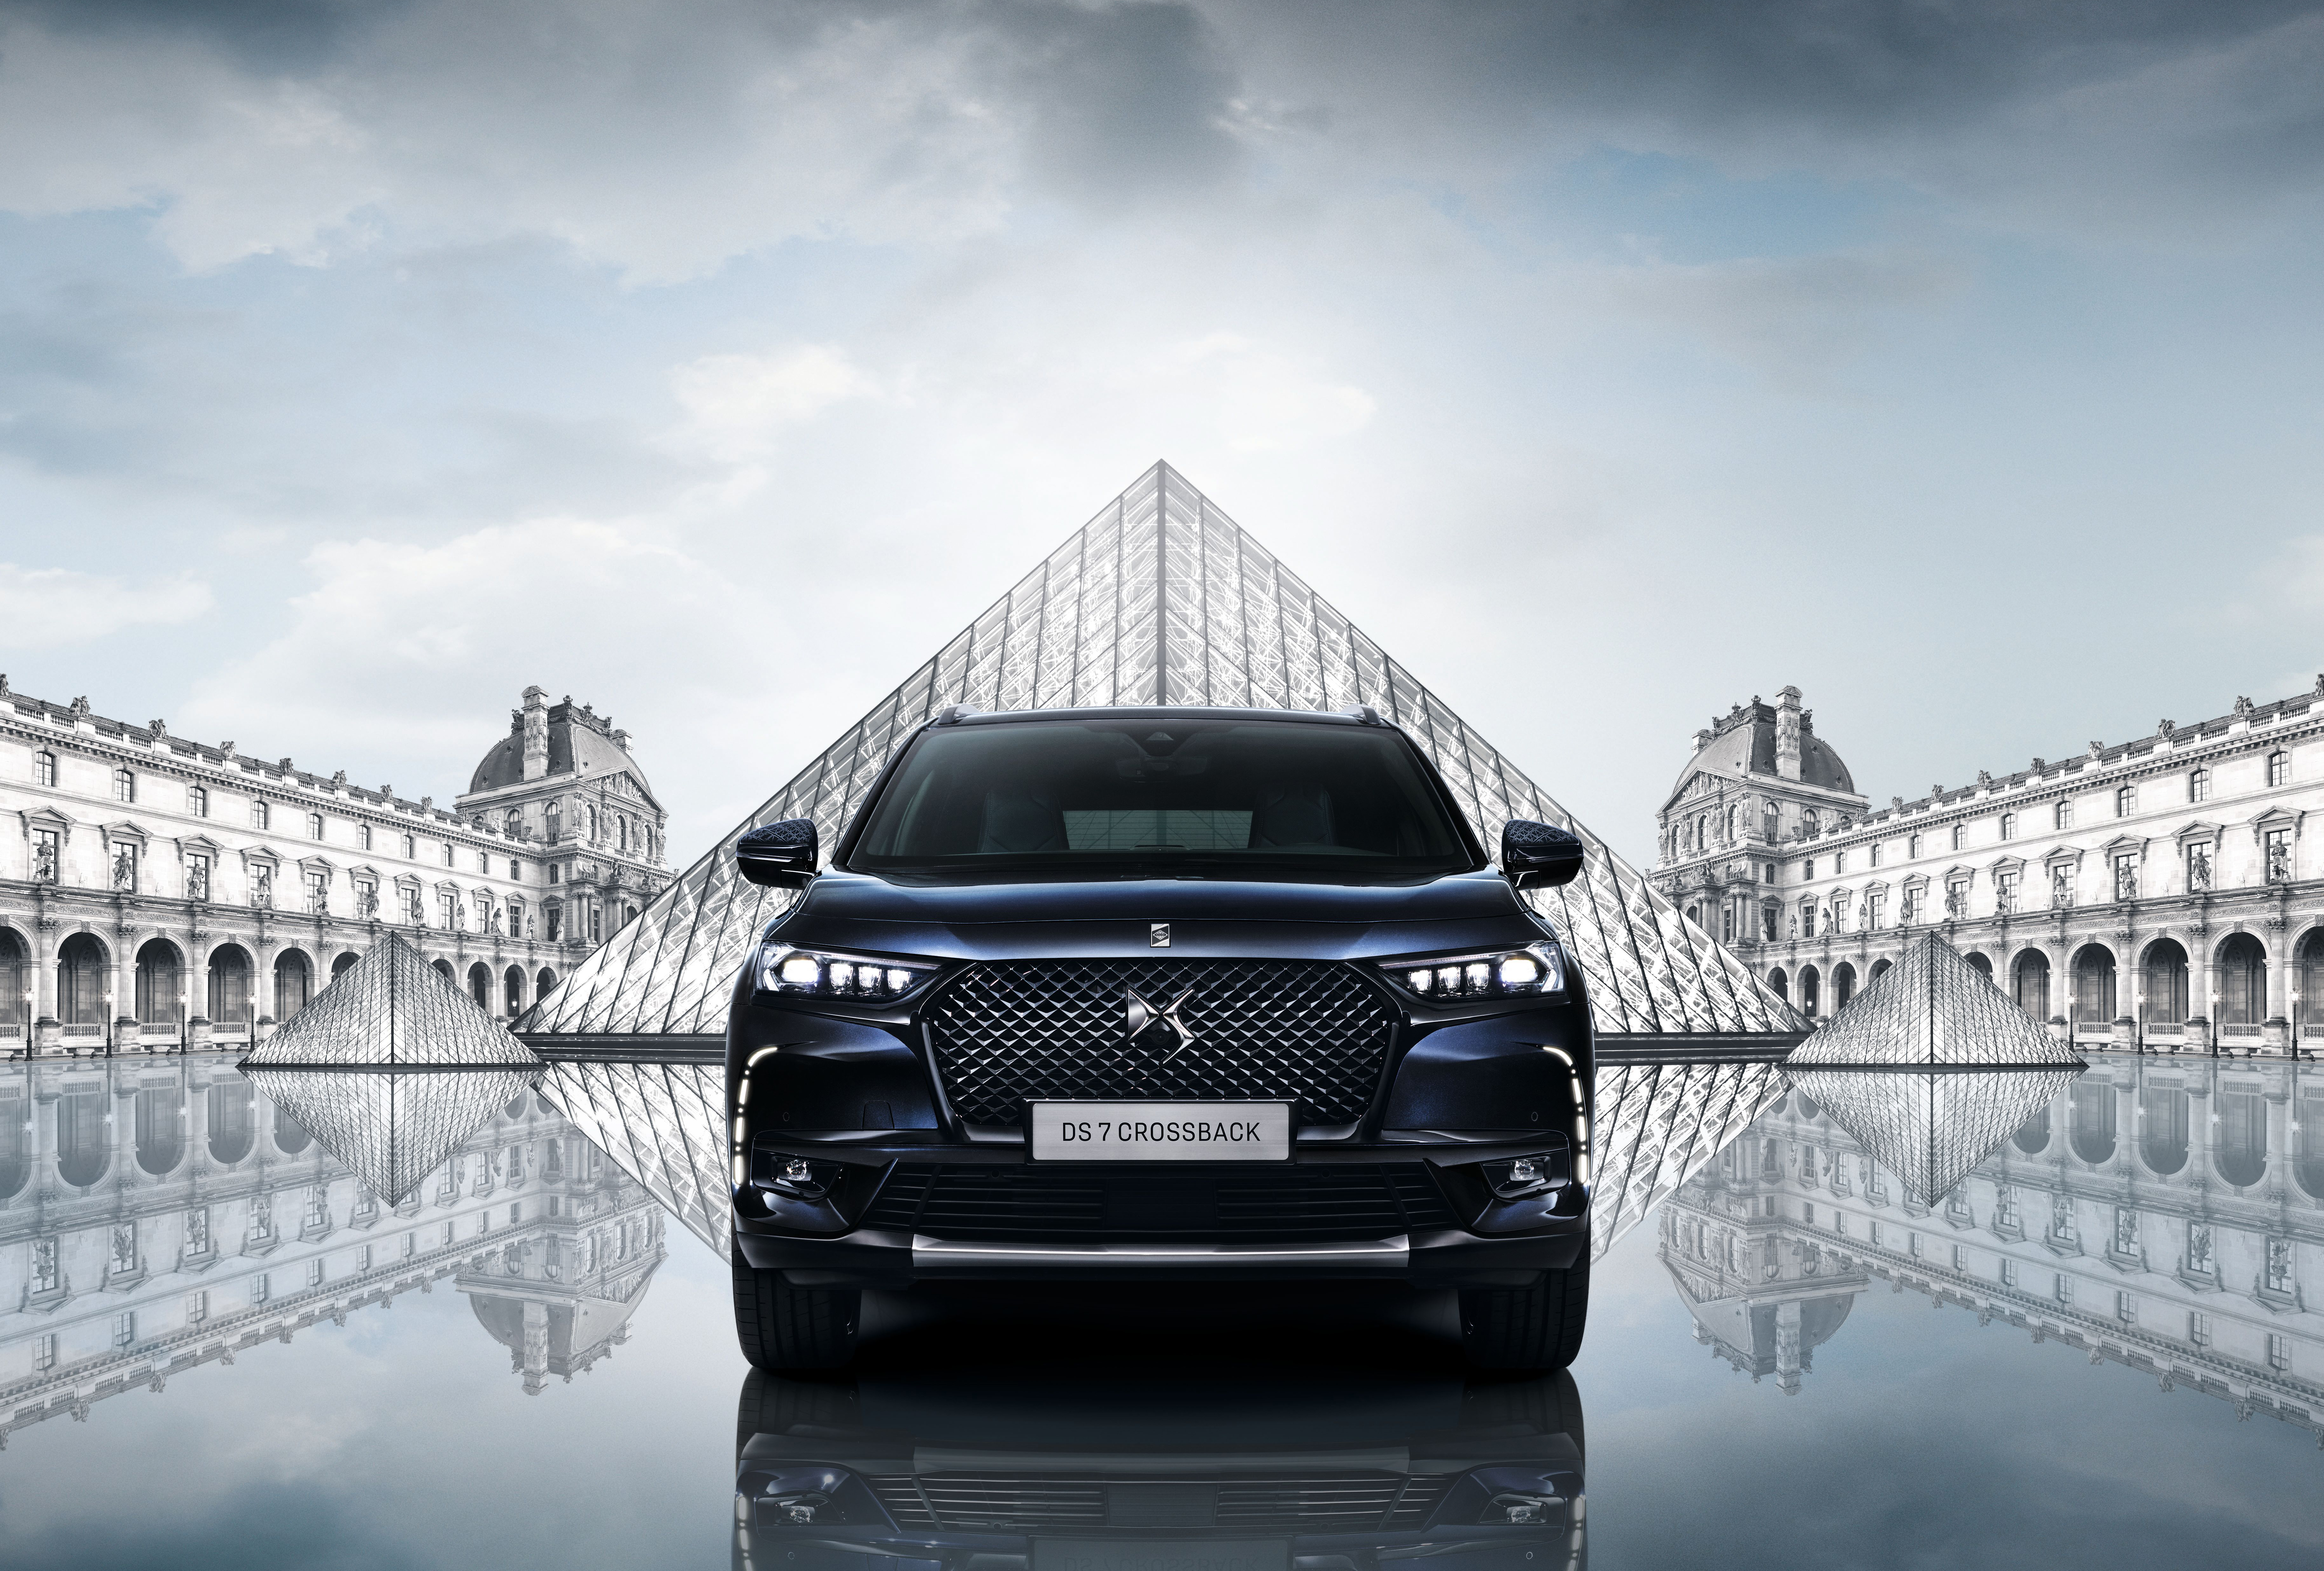 DS7 Crossback Louvre - car & louvre cropped